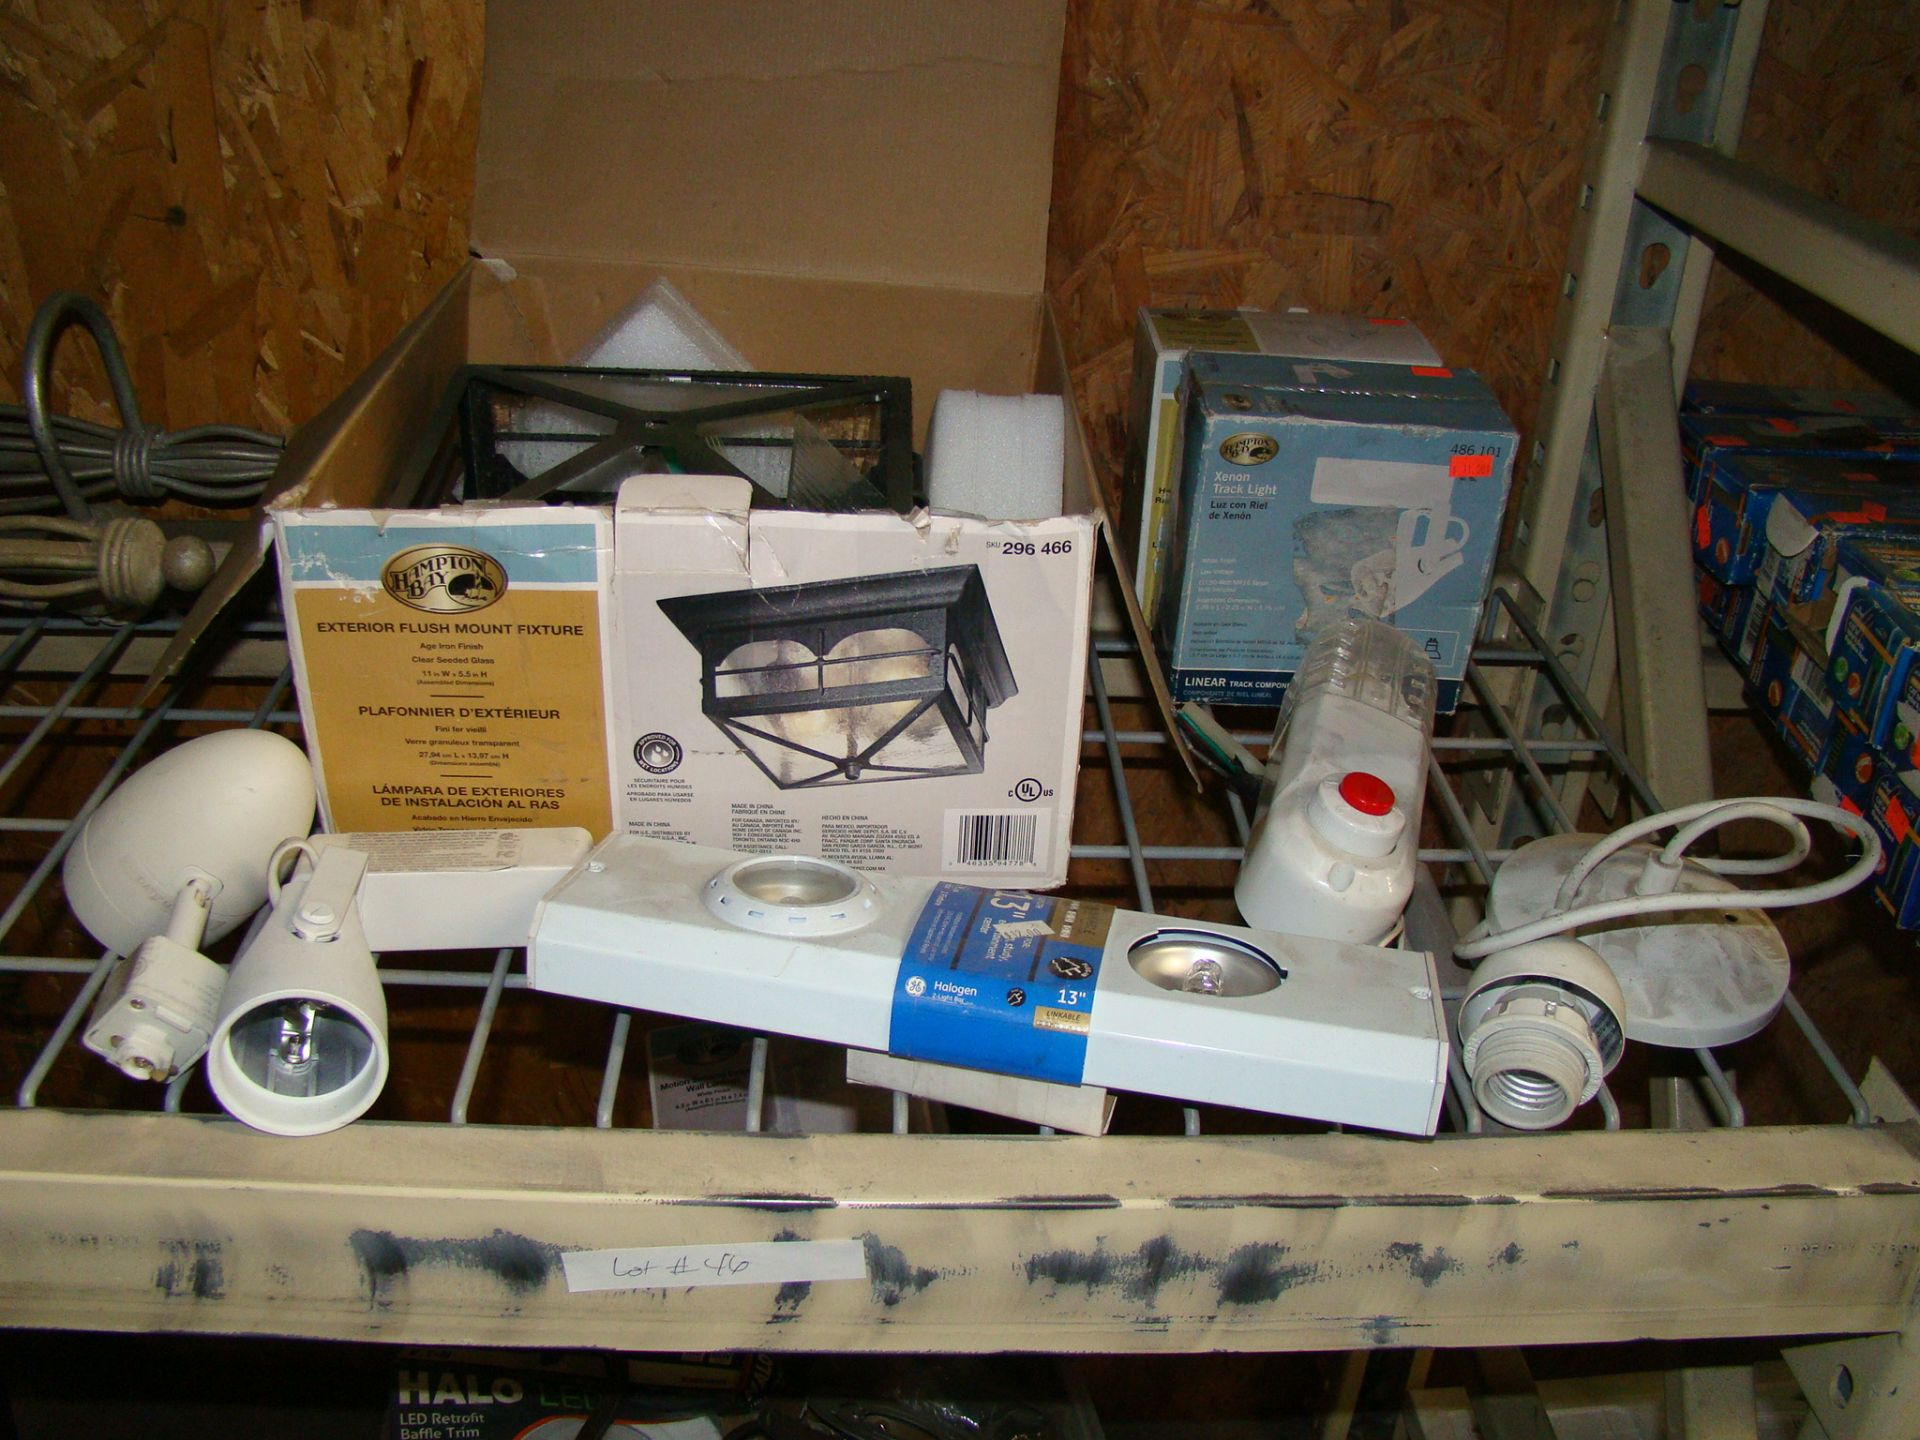 Lot 46 - Lot of Track lights, exterior flush mount fixture, wall light